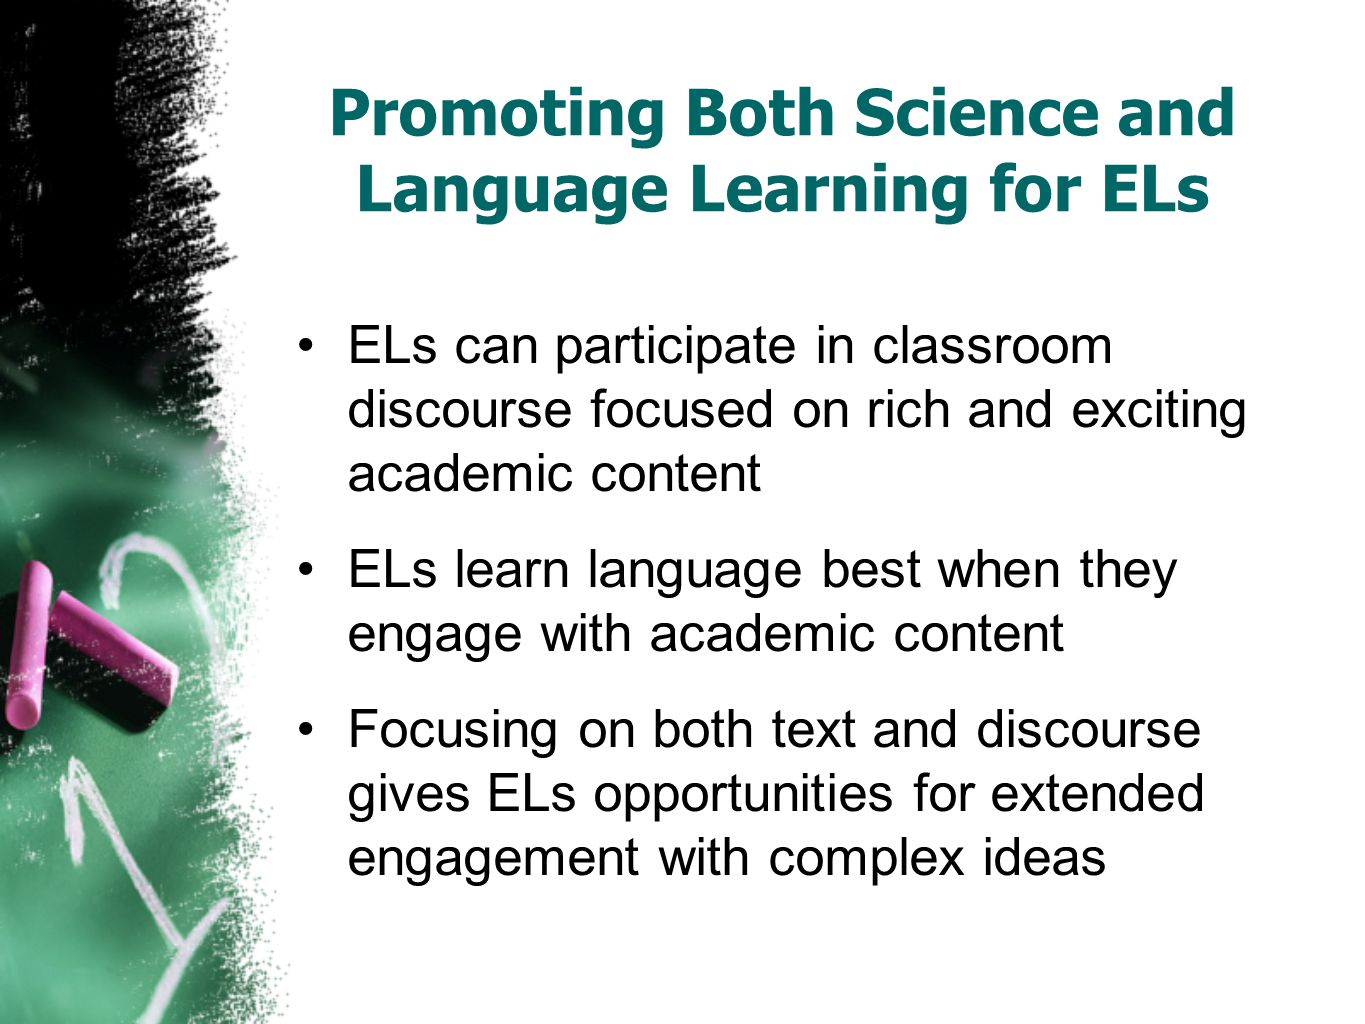 Promoting Both Science and Language Learning for ELs ELs can participate in classroom discourse focused on rich and exciting academic content ELs learn language best when they engage with academic content Focusing on both text and discourse gives ELs opportunities for extended engagement with complex ideas